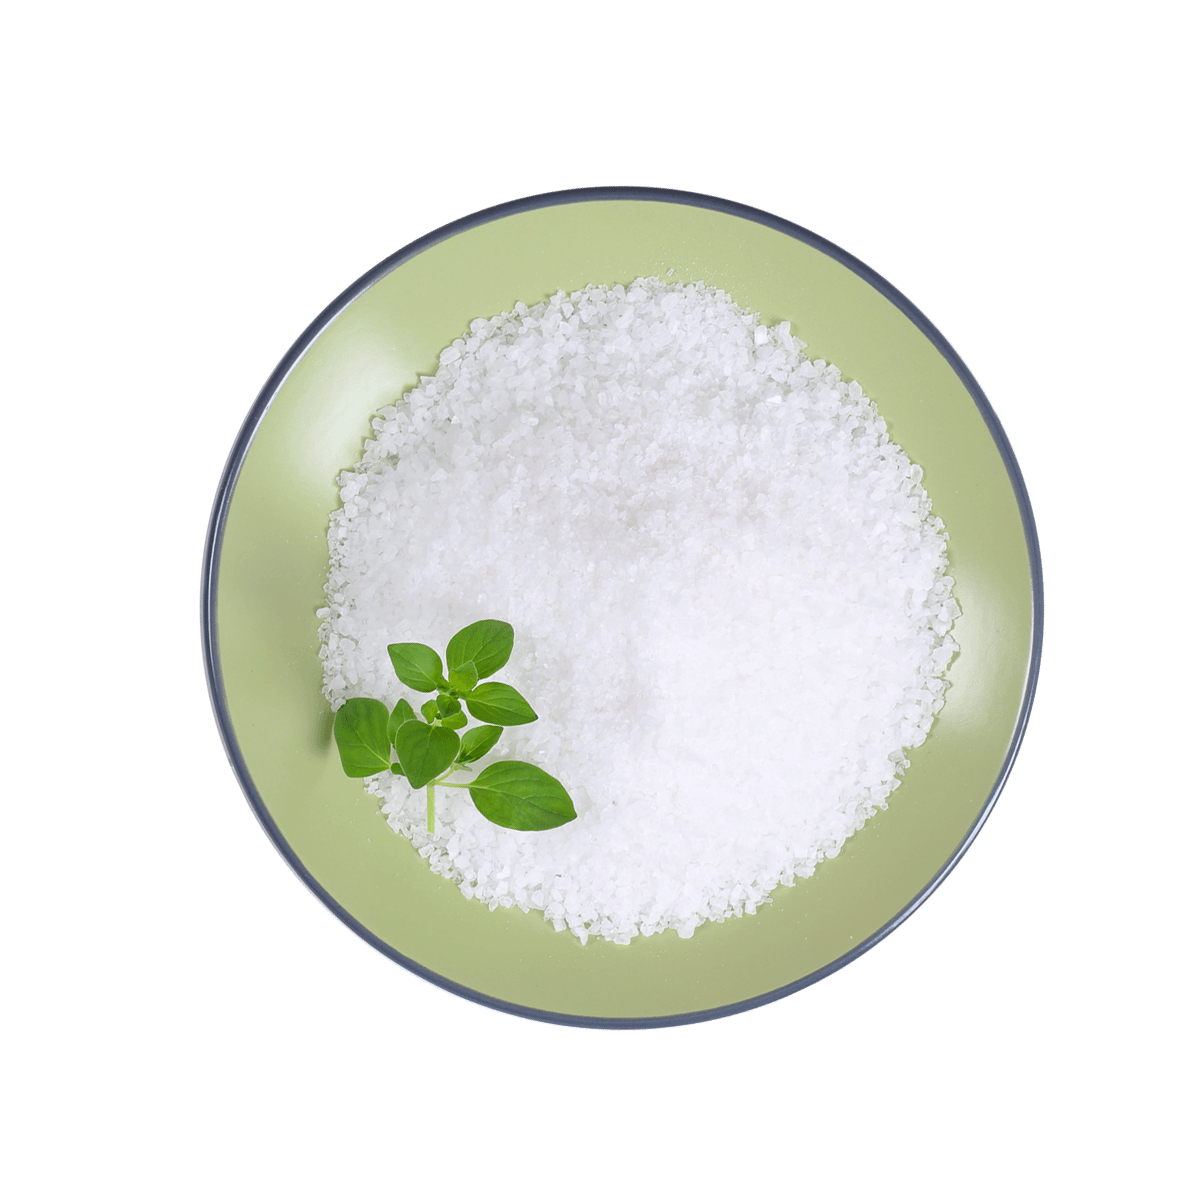 Light green bowl filled with coarse salt granules and natural green leaves combined with Iodine to make Potassium Iodide.